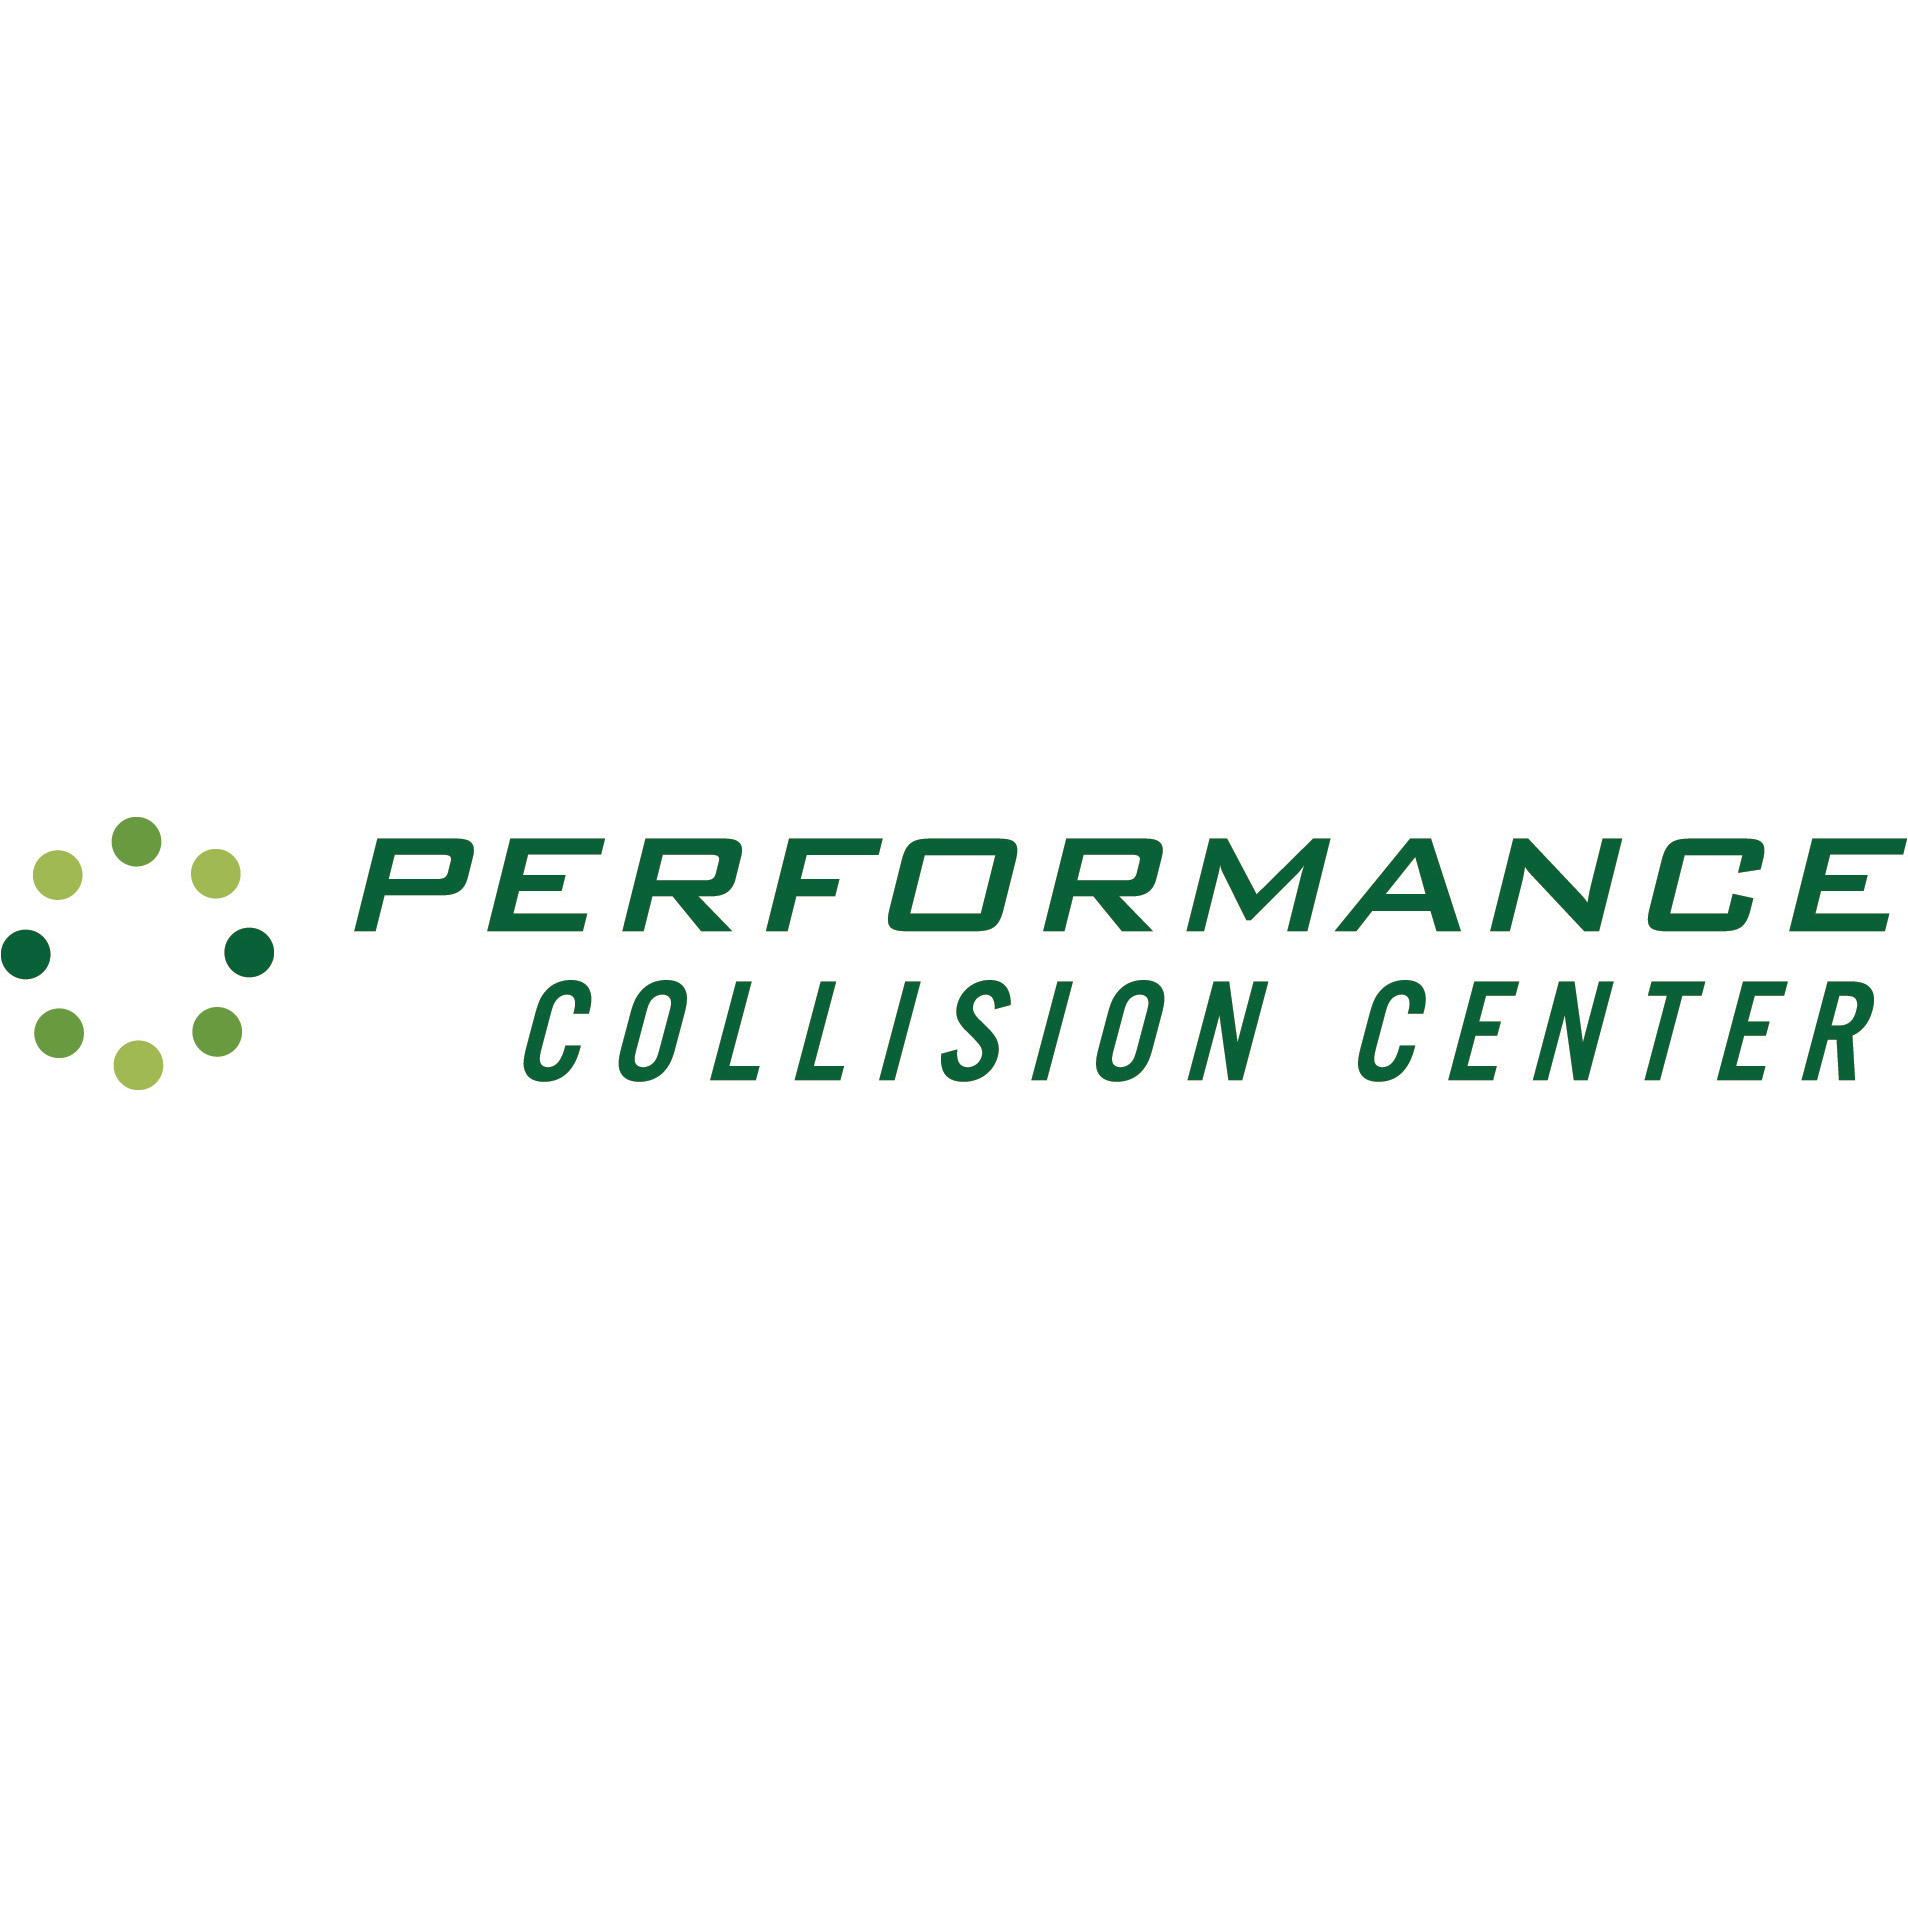 Performance Collision Center